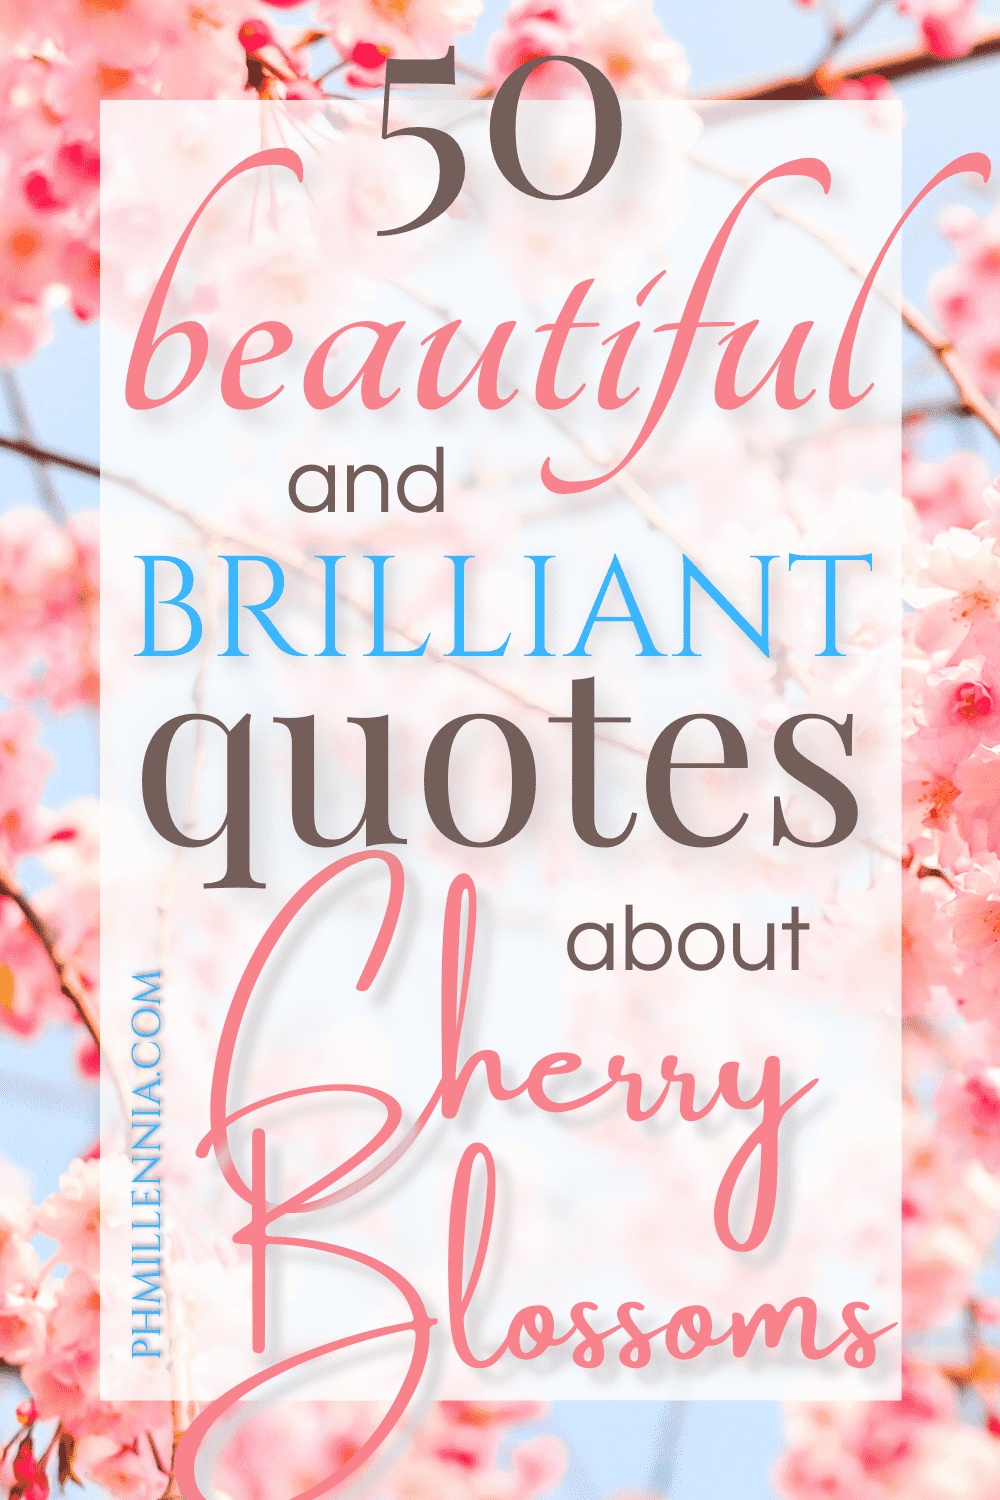 """An image of cherry blossoms or sakura, featured as a Pinterest pin for the article """"50 Beautiful and Brilliant Quotes about Cherry Blossoms"""" on phmillennia.com"""